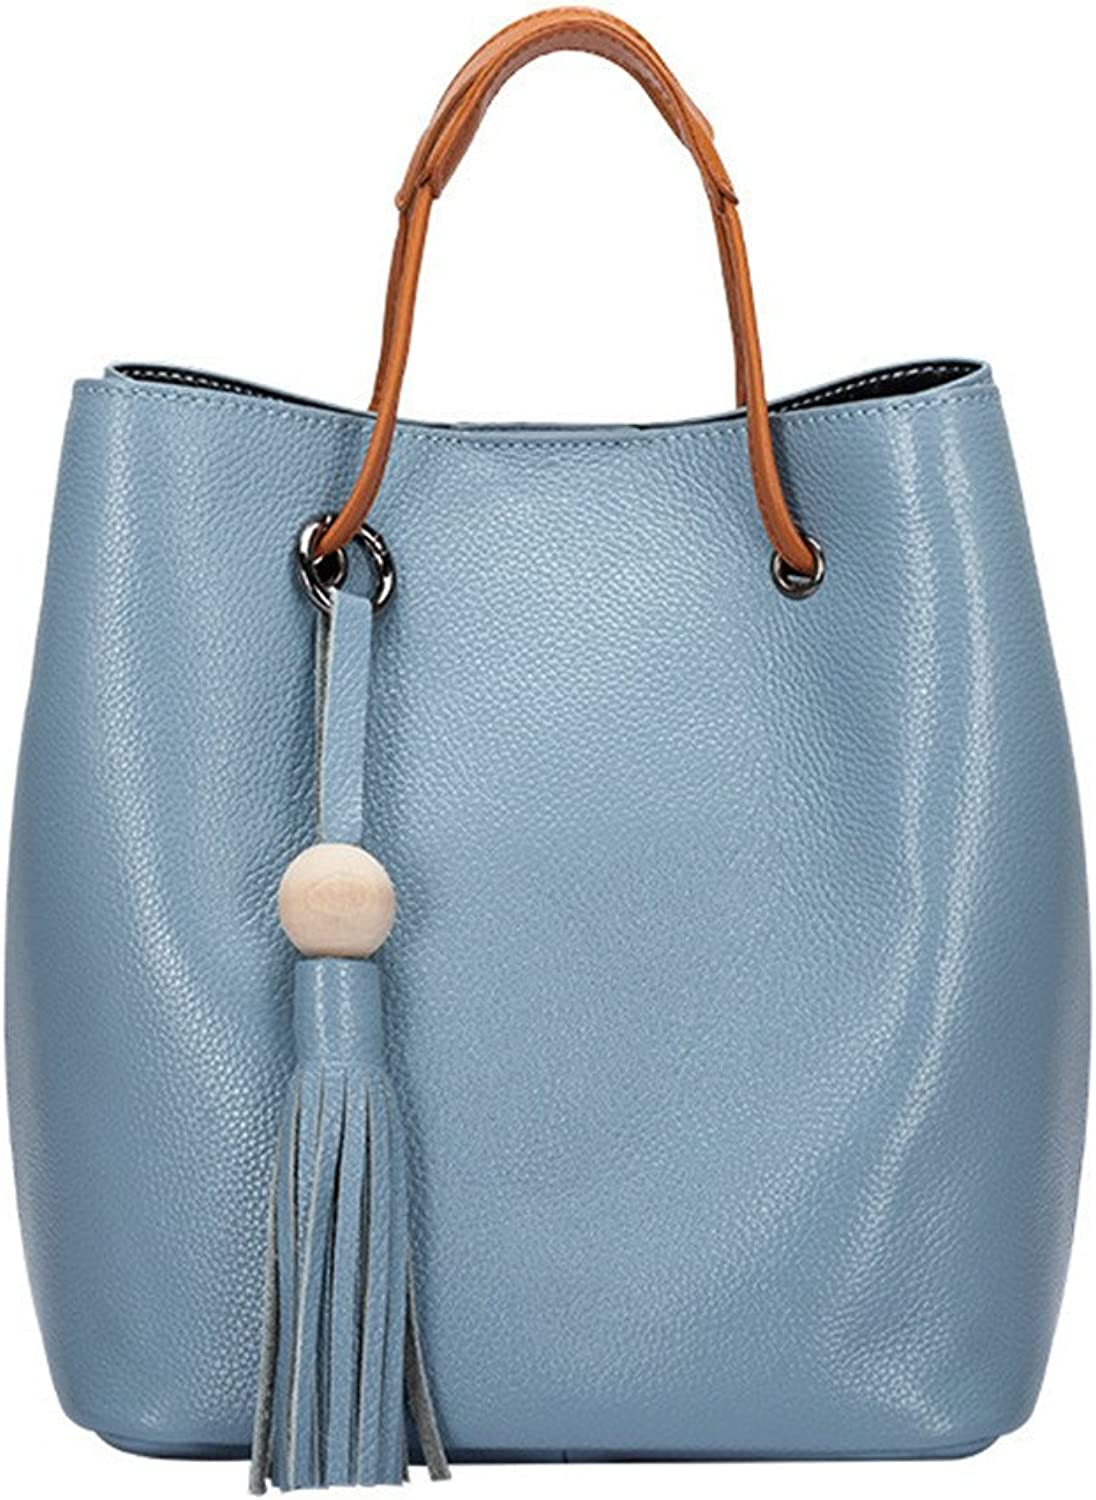 CCBubble 2 Piece Genuine Leather Bucket Bag for Women Shoulder Crossbody Bags